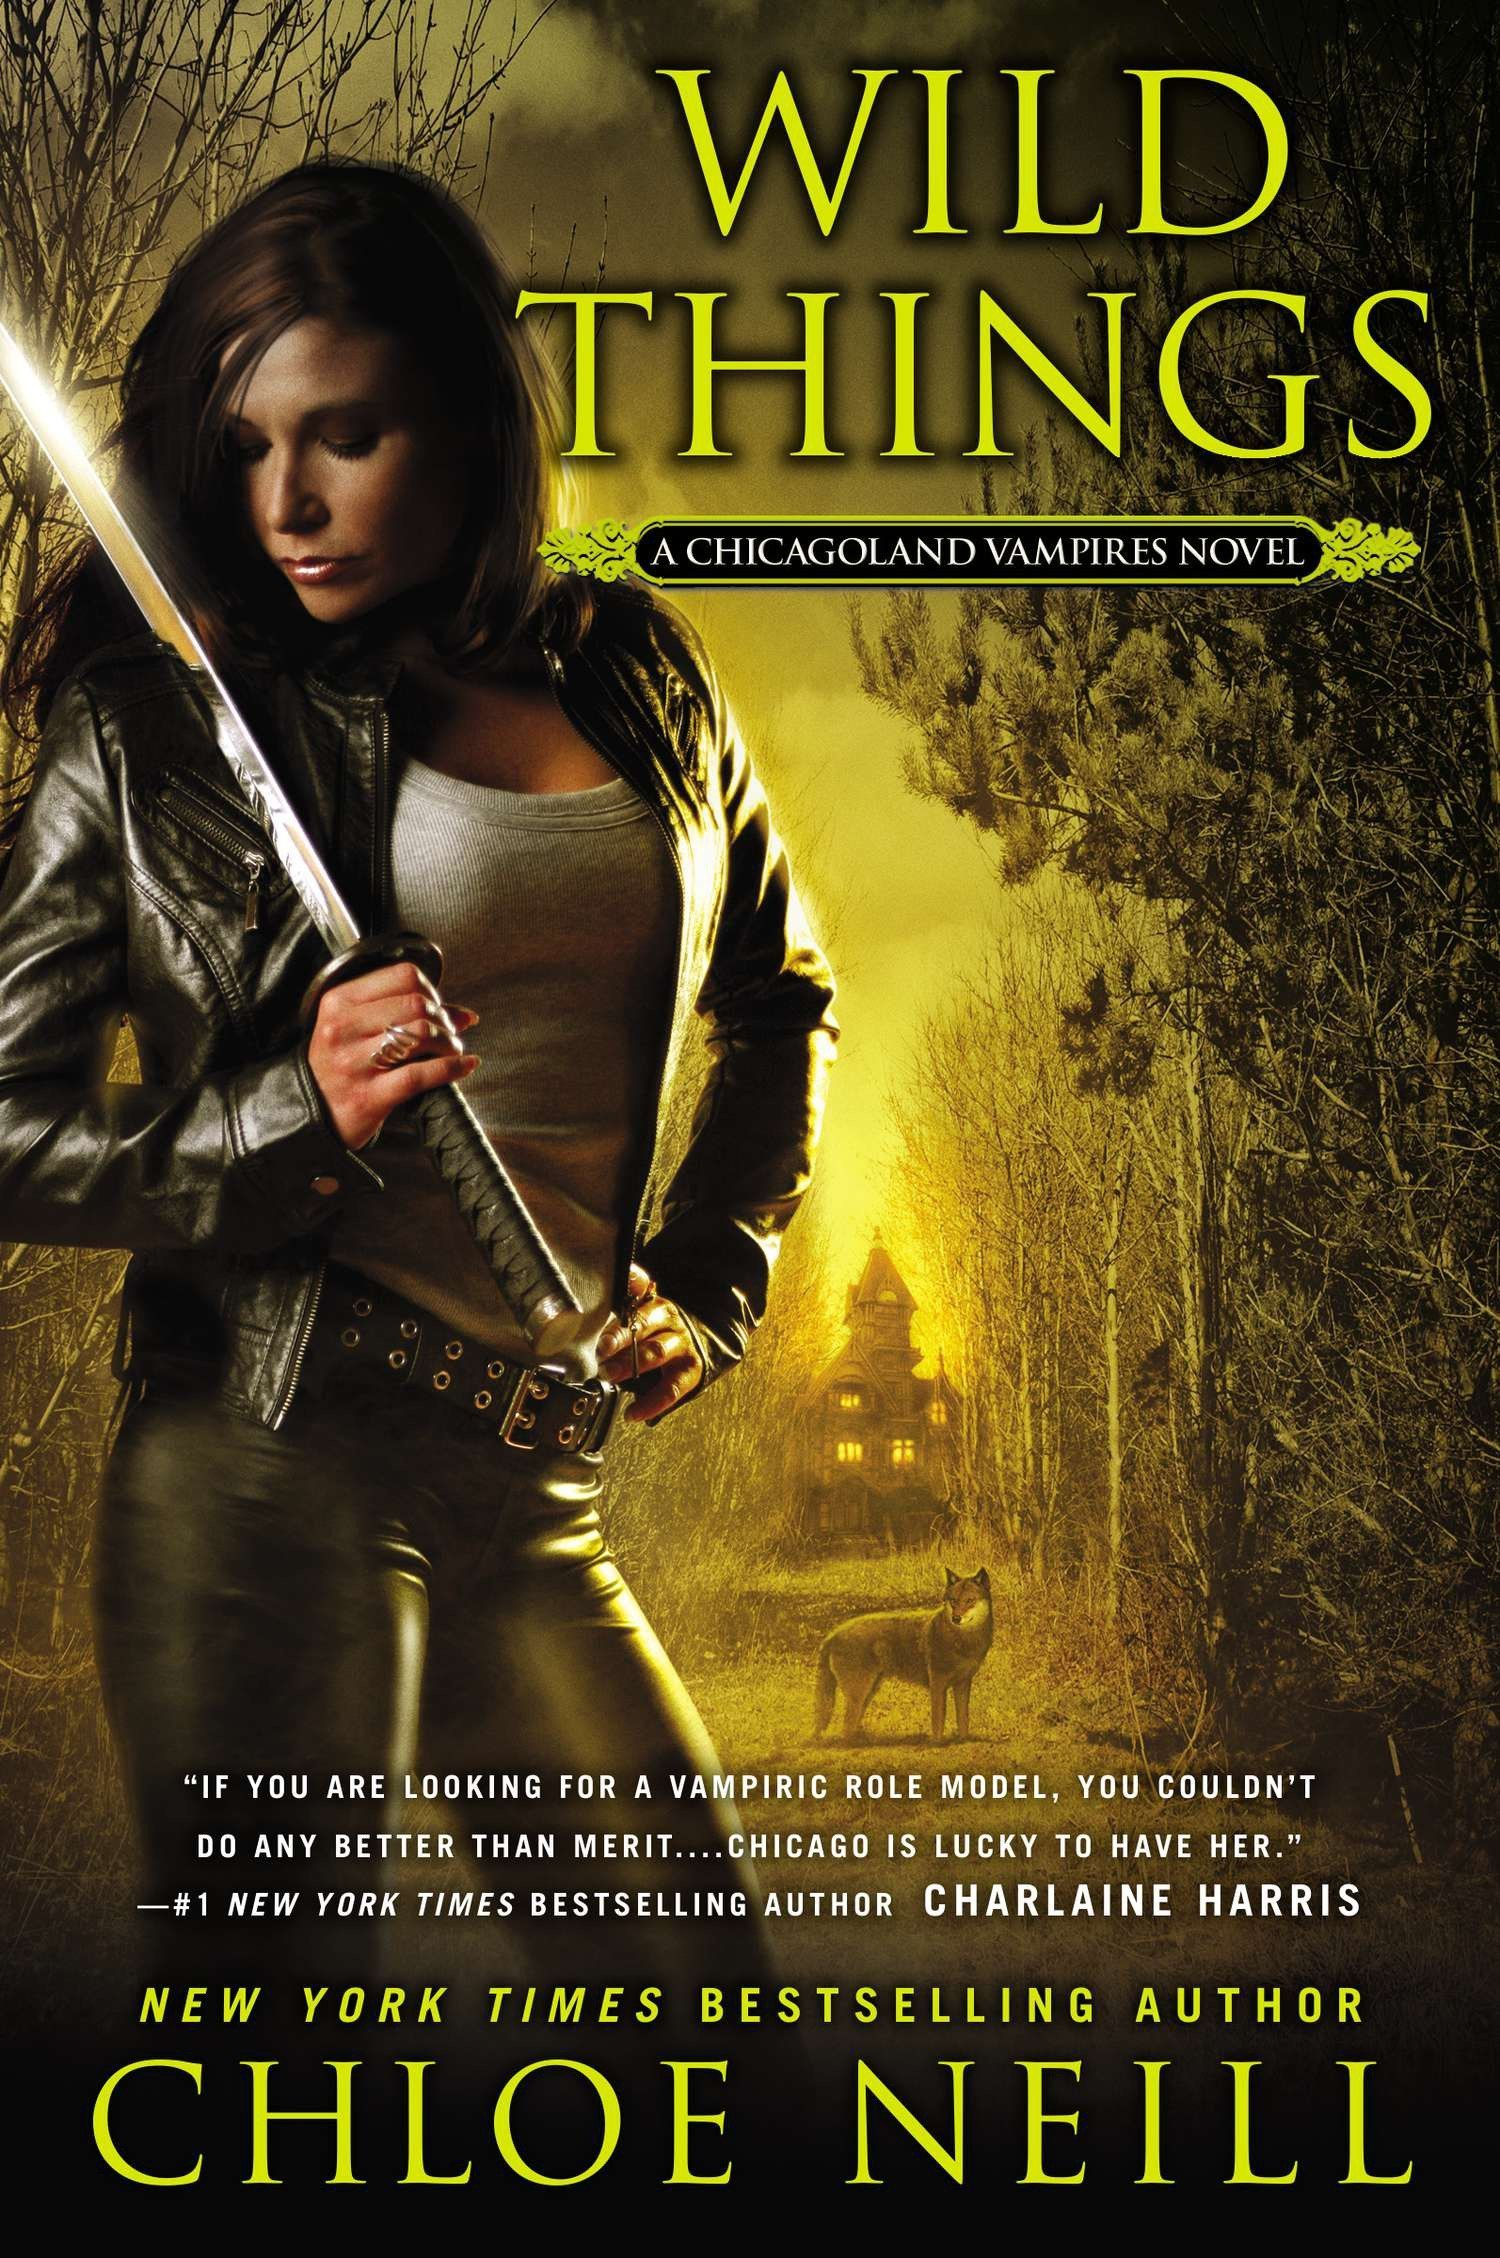 Download Wild Things (Chicagoland Vampires) ebook